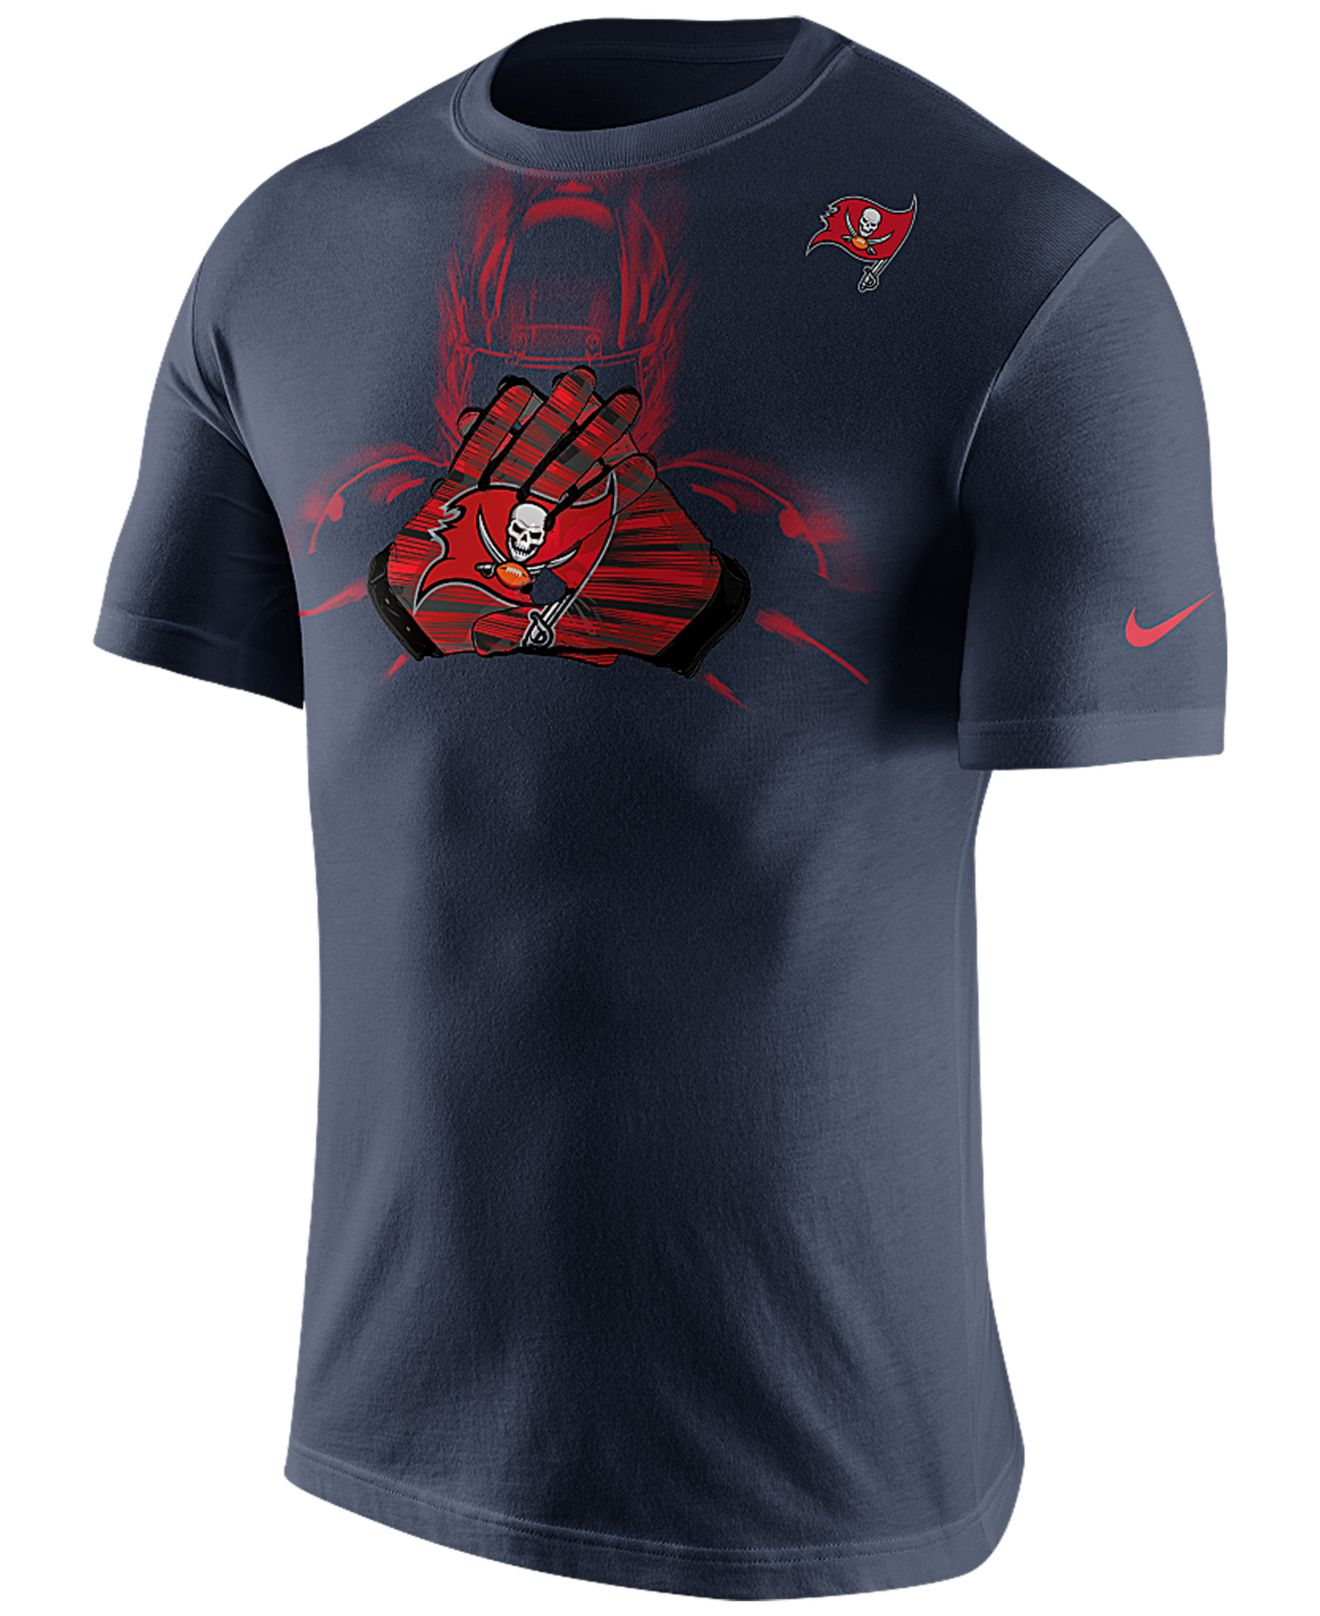 Nike men 39 s short sleeve tampa bay buccaneers glove t shirt for South bay t shirts